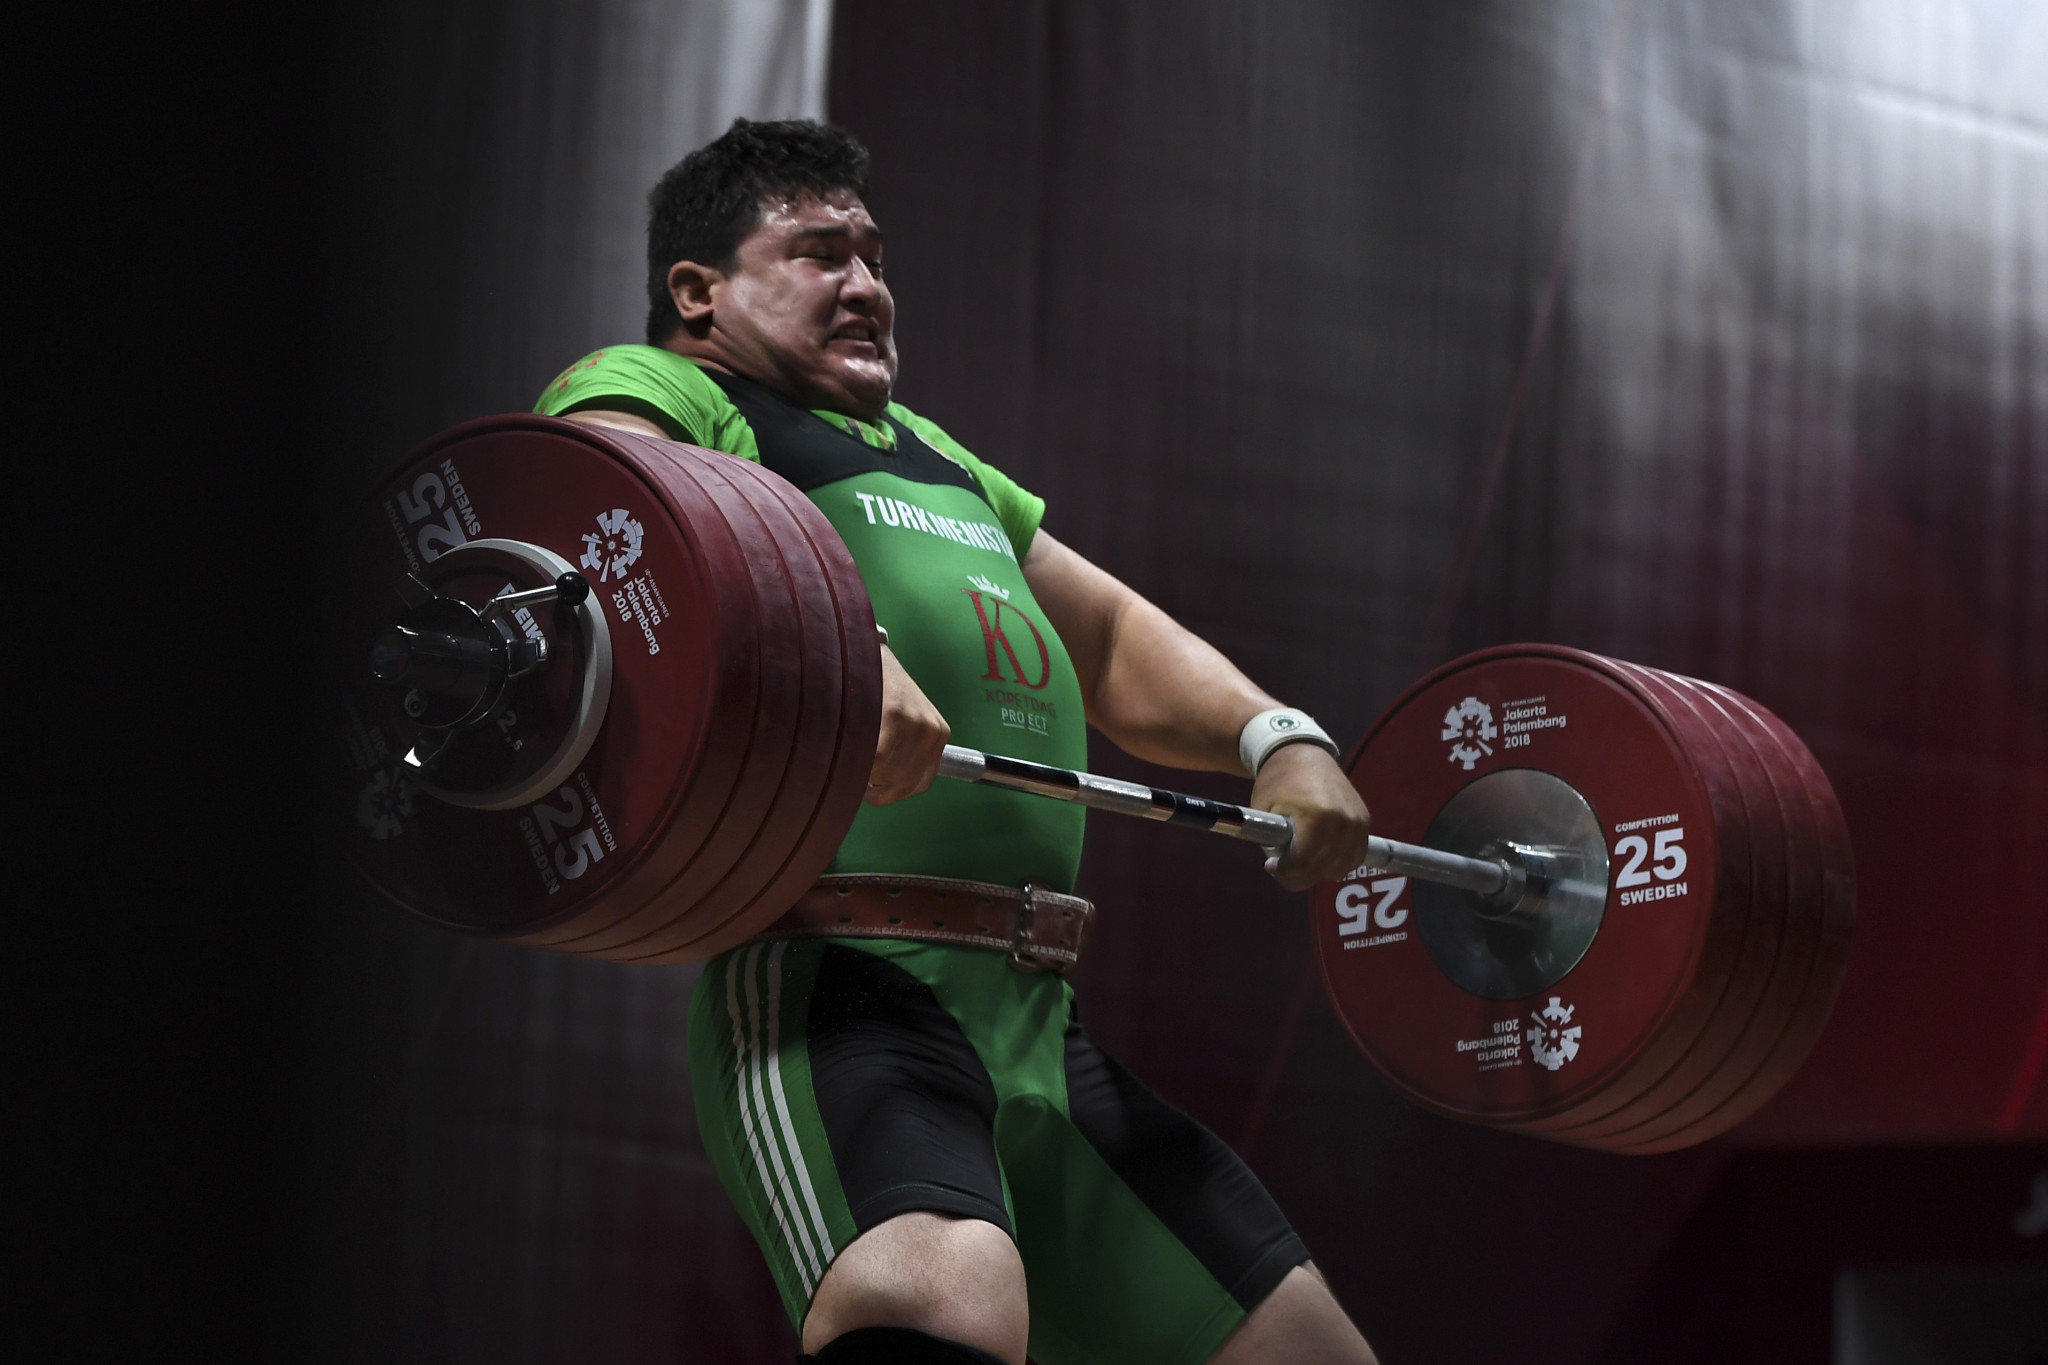 Turkmenistan will host the World Championships for the first time ©Getty Images